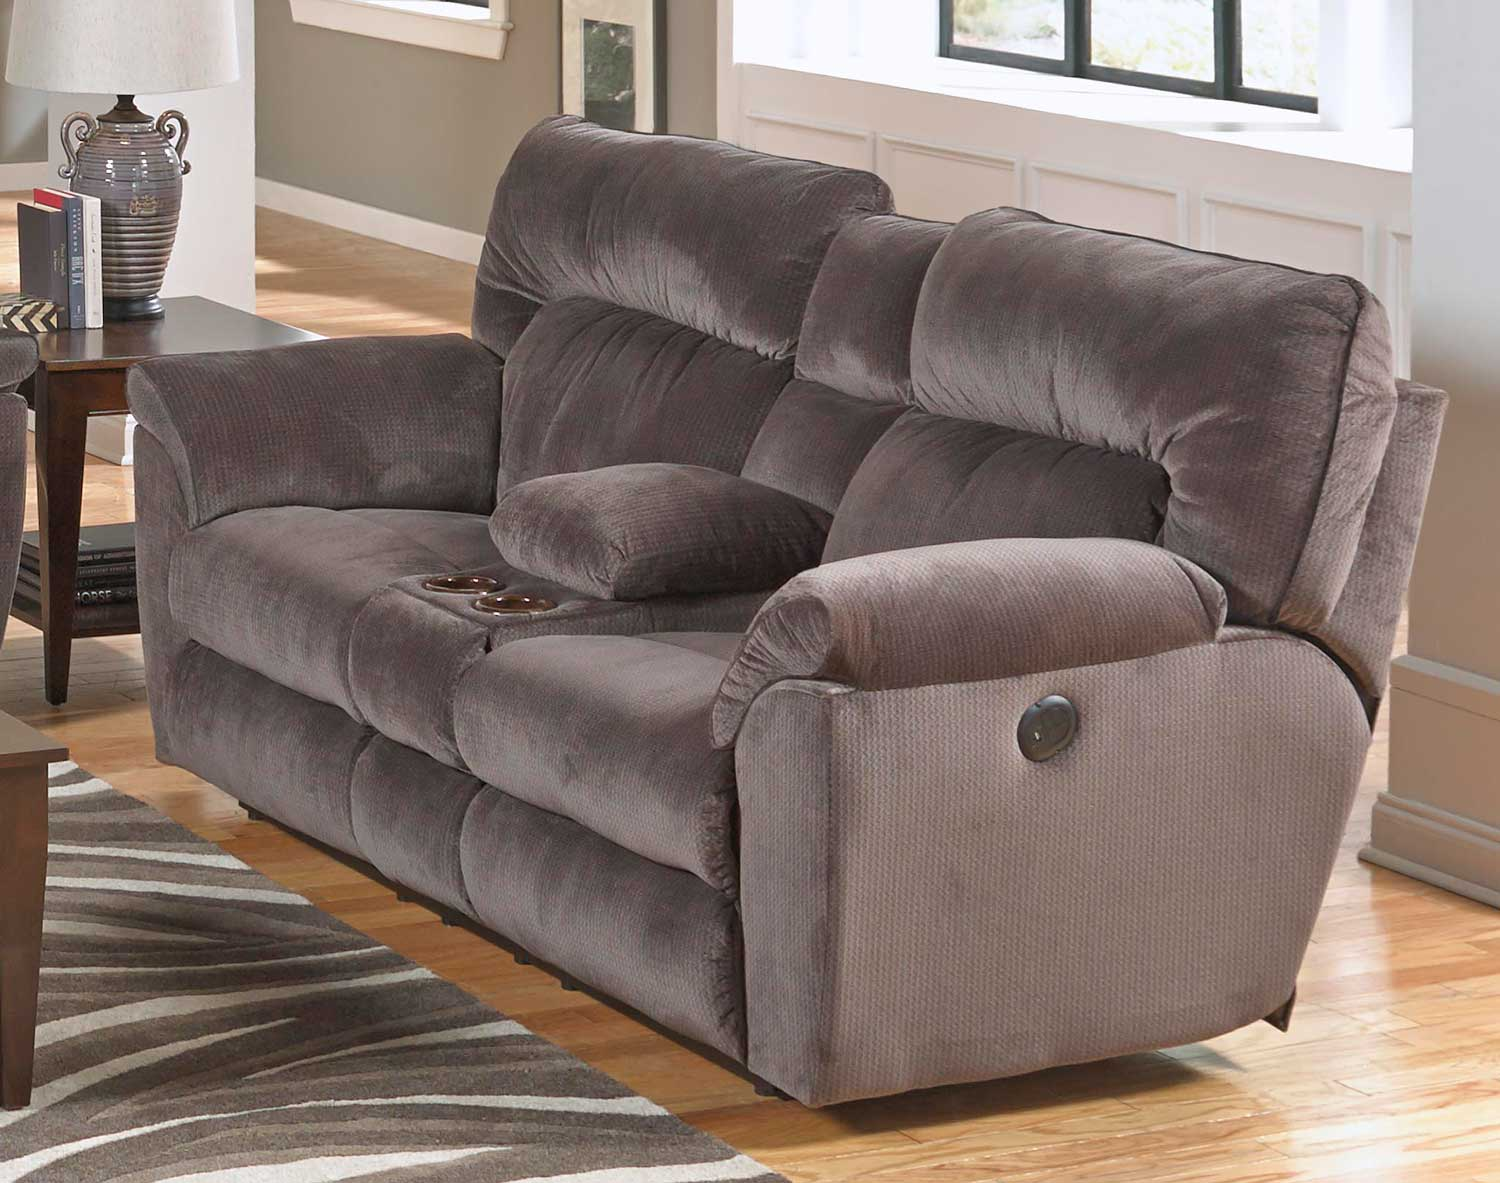 Catnapper nichols power reclining sofa set granite cn 61671 sofa set granite at Catnapper loveseat recliner